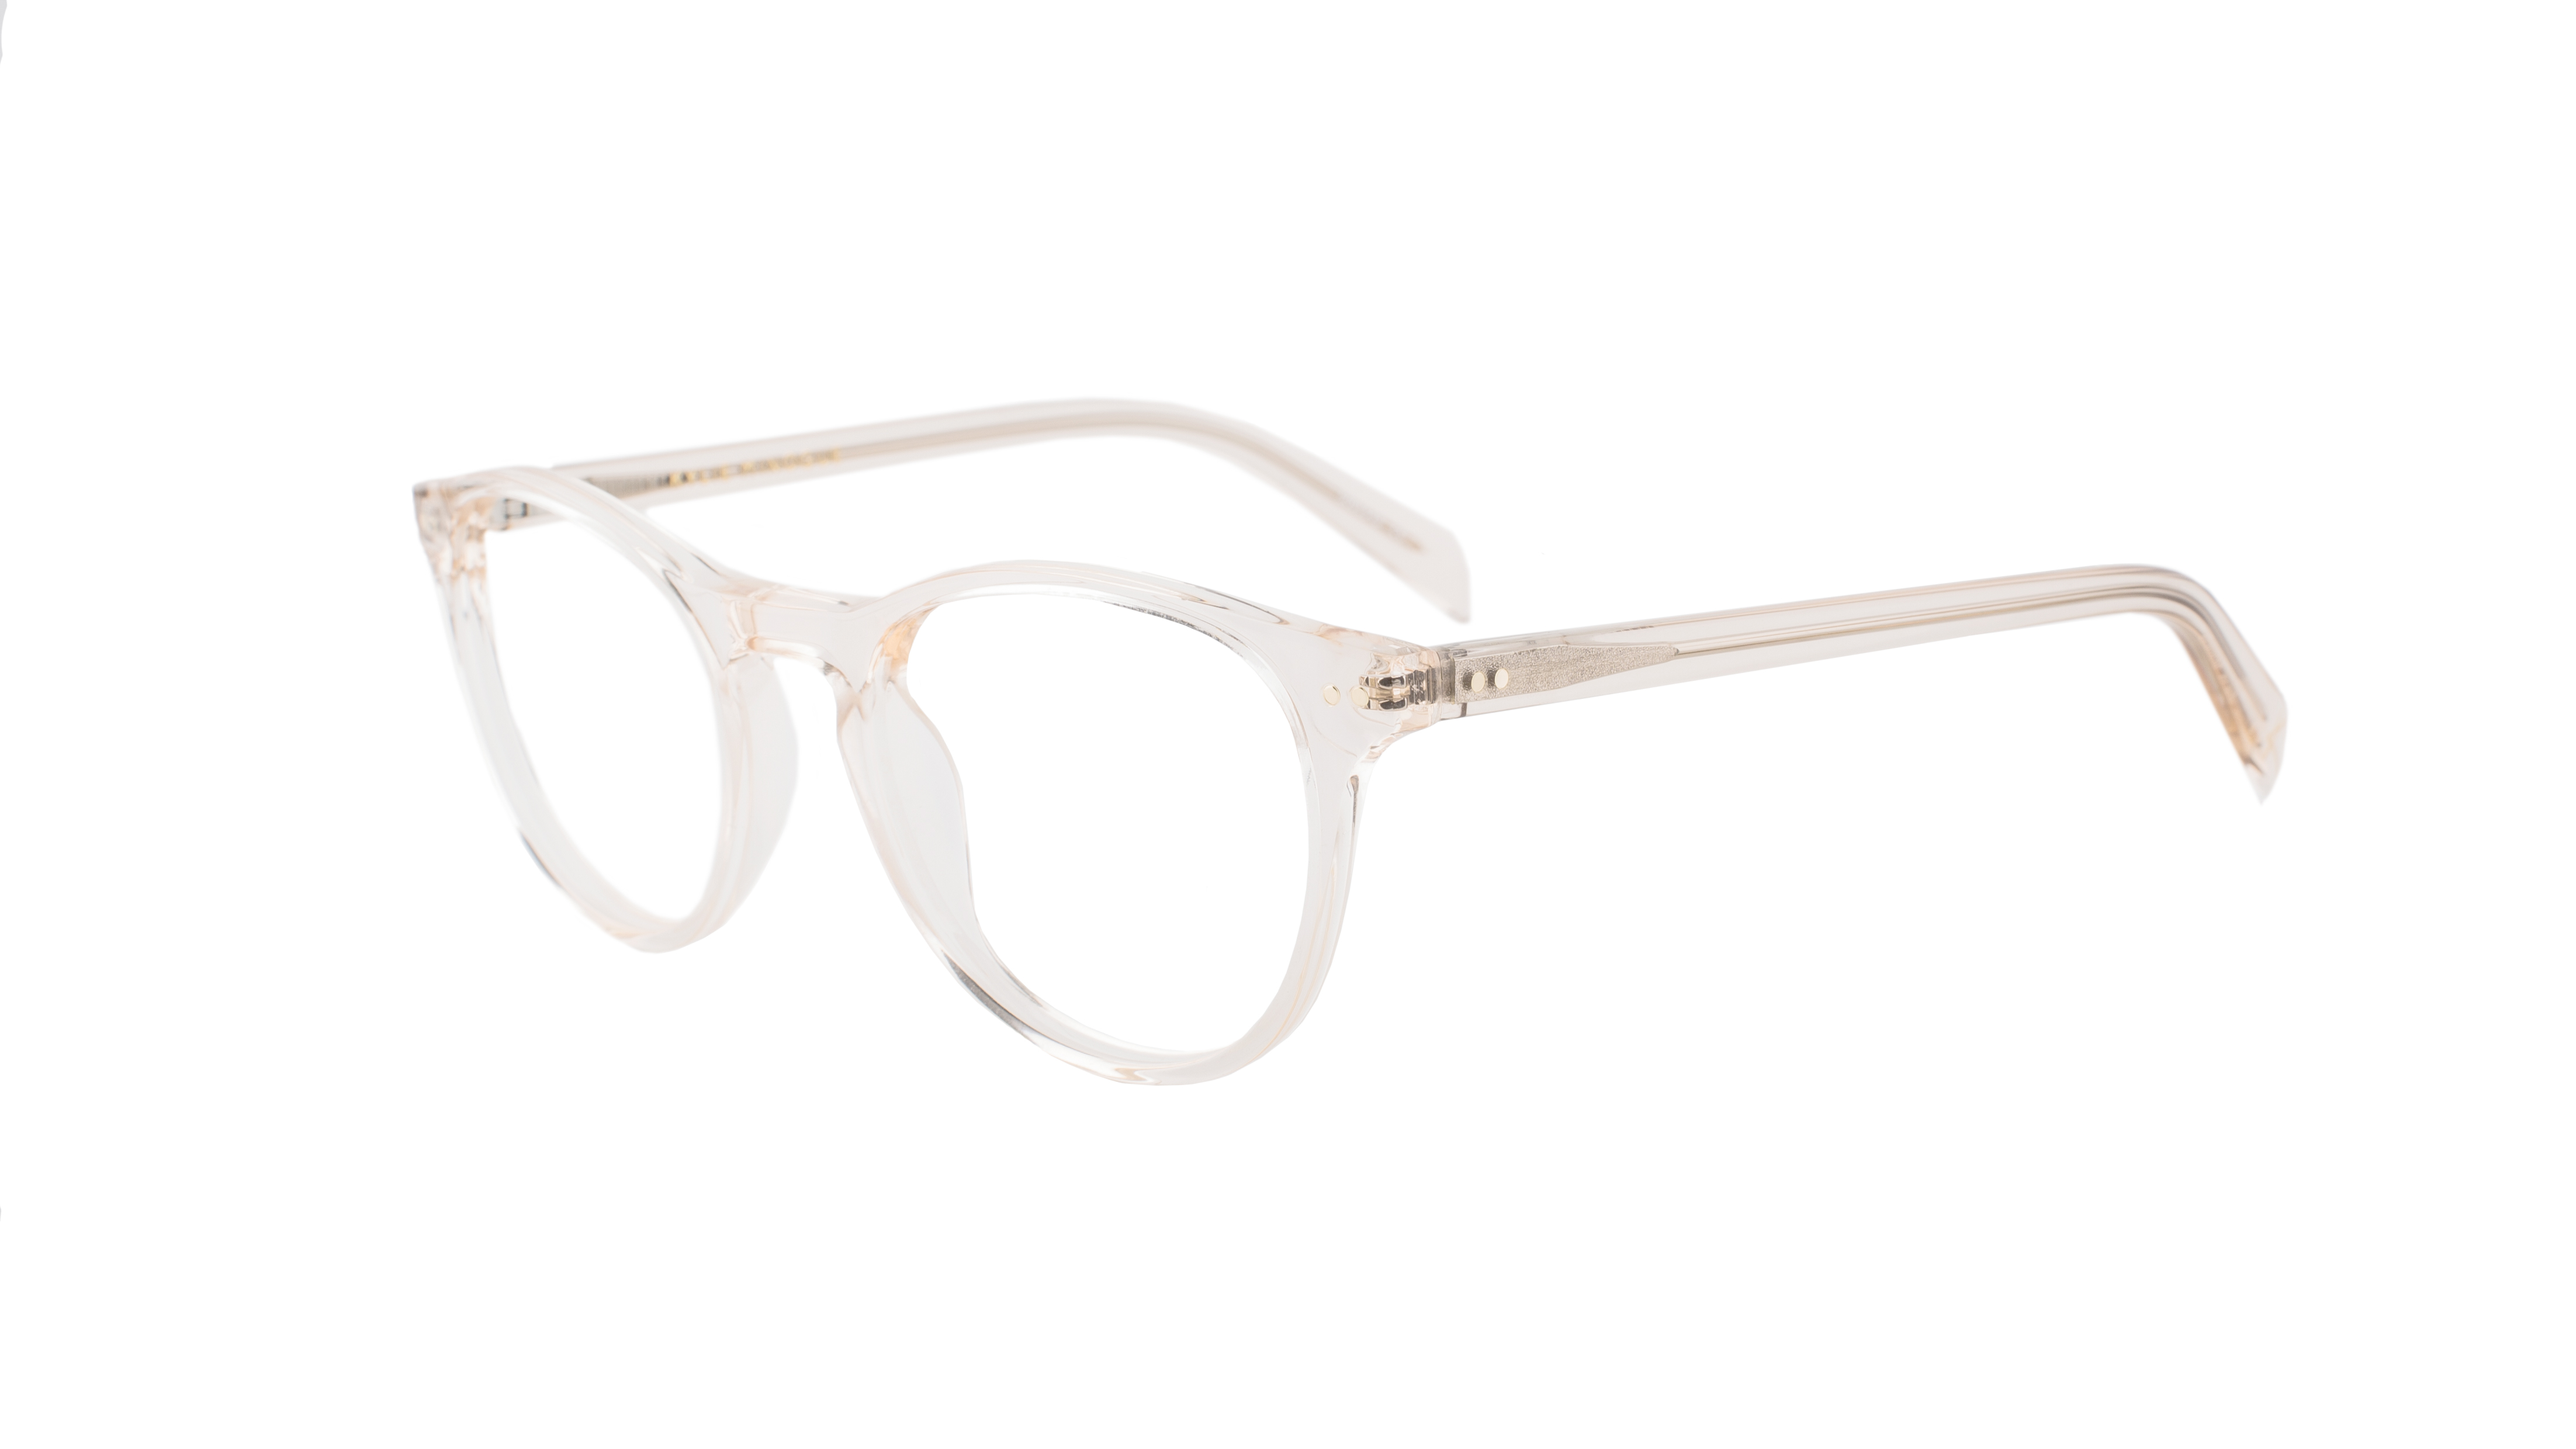 Kylie Minogue Eyewear_Kylie 13_SKU 30520295_RRP 2 pairs from $299 (2)